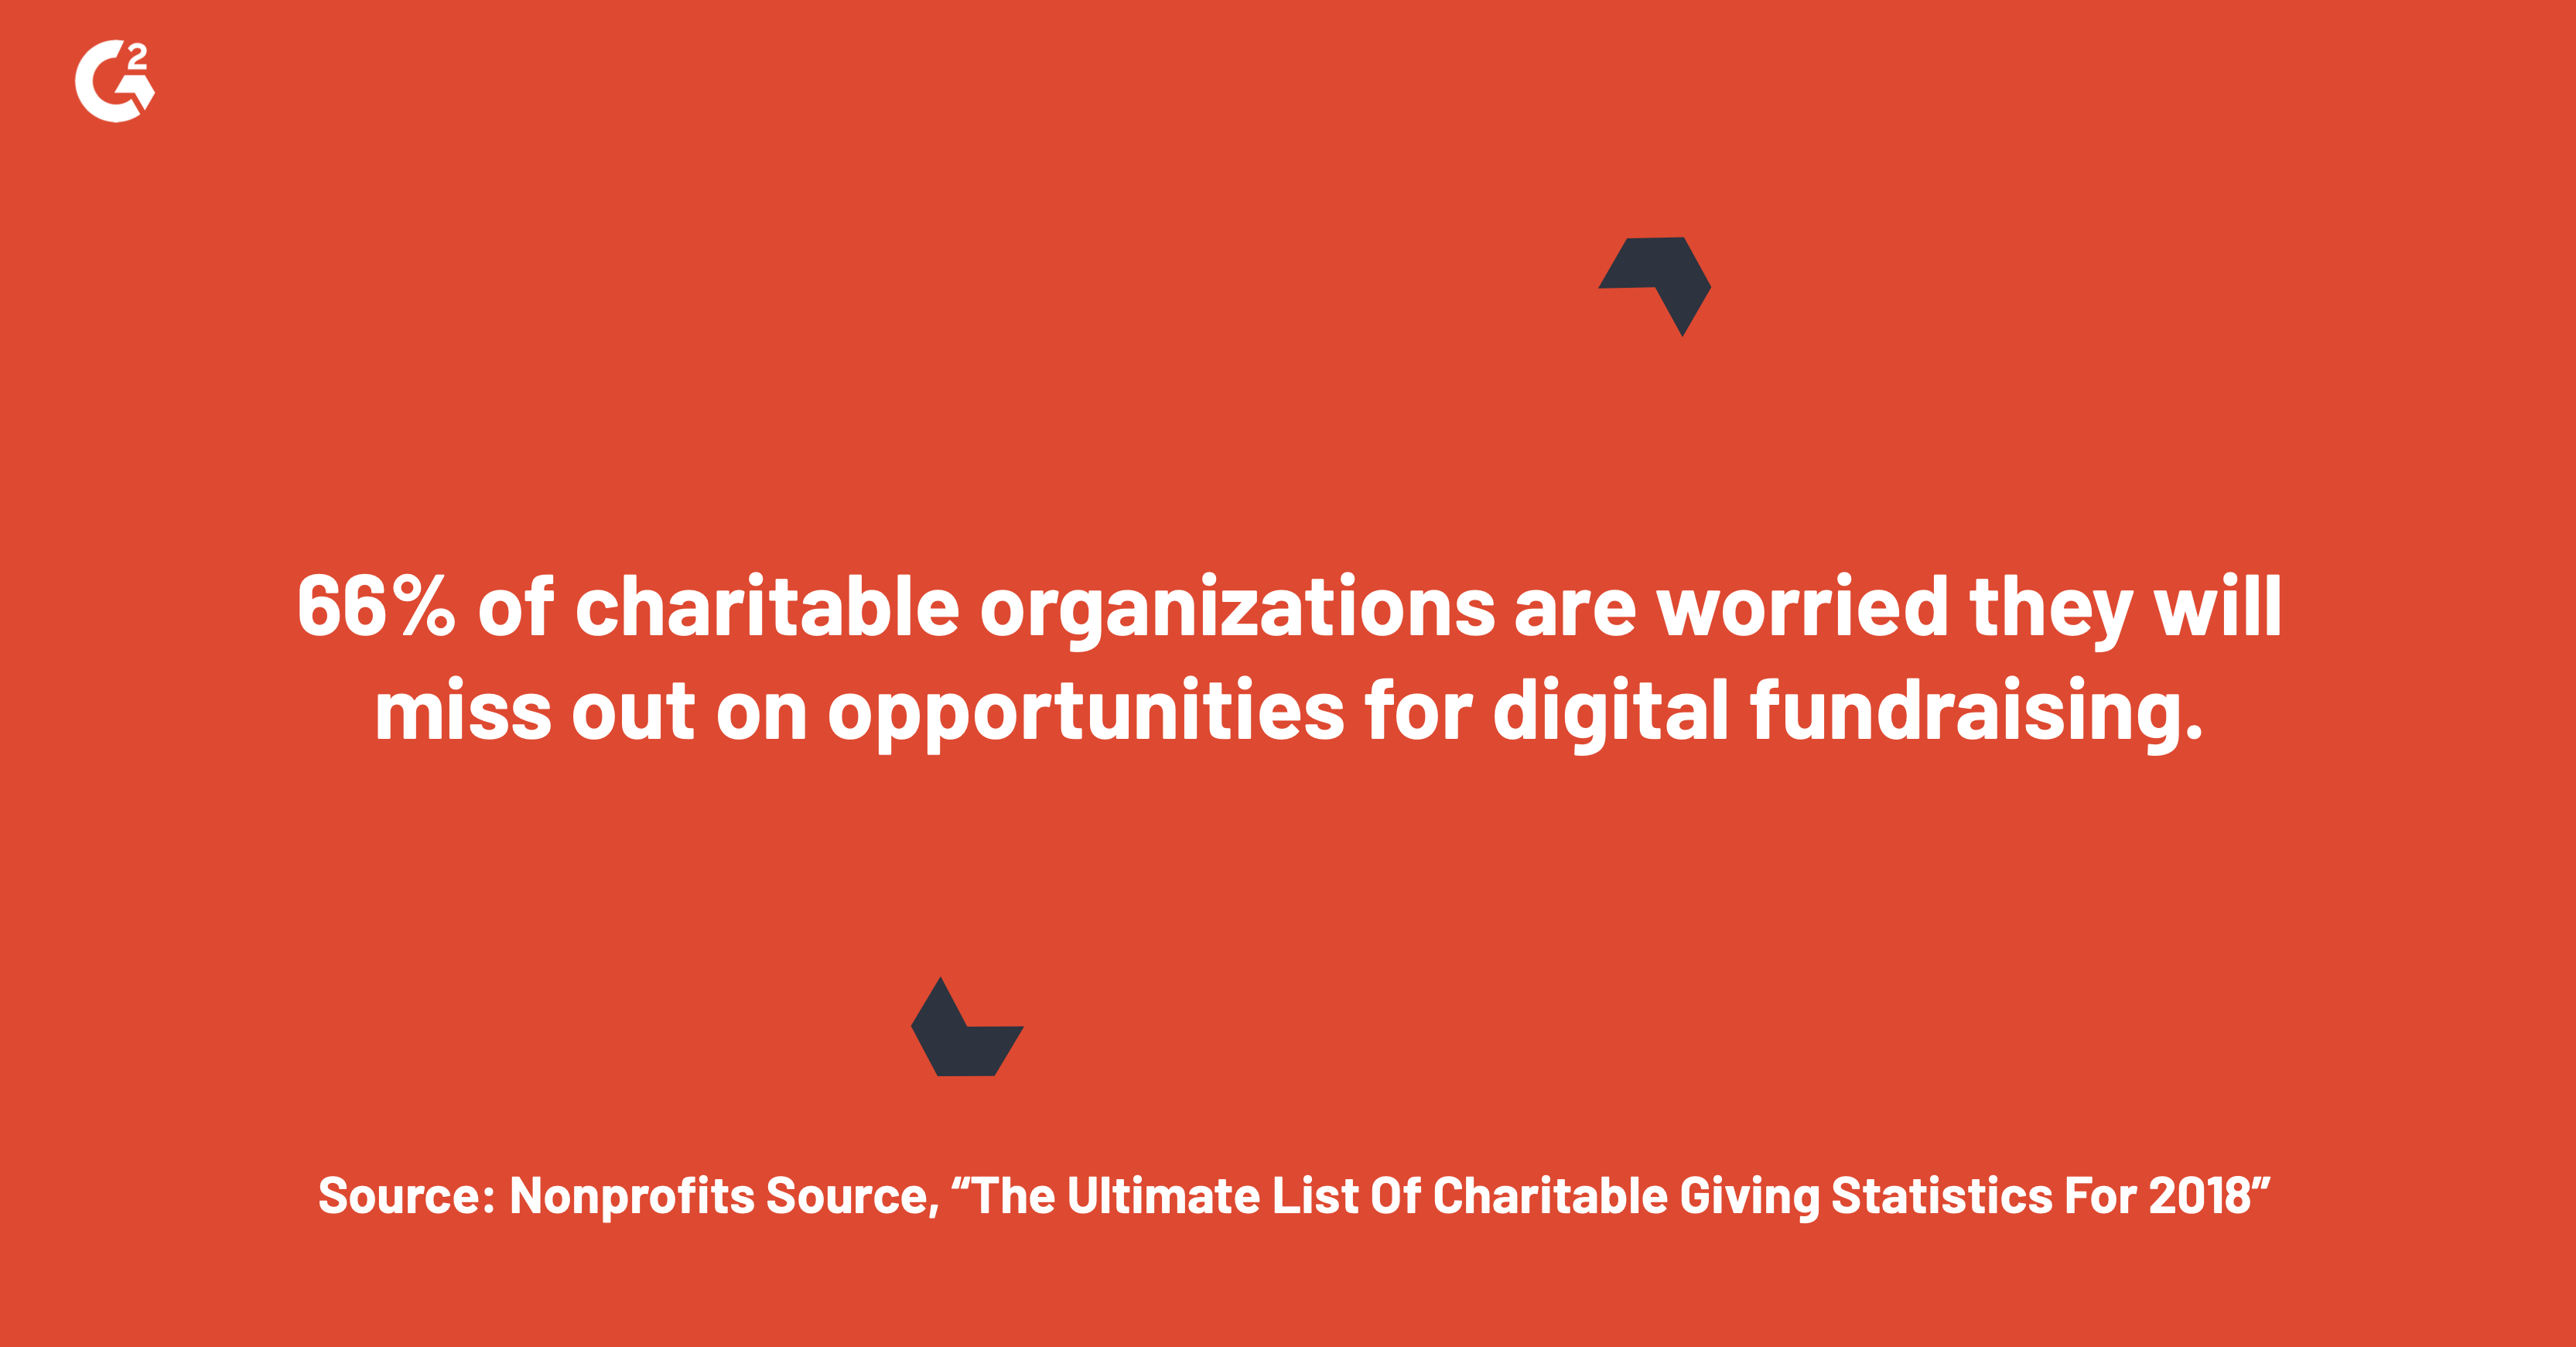 66% of charitable organizations are worried they will miss out on opportunities for digital fundraising.